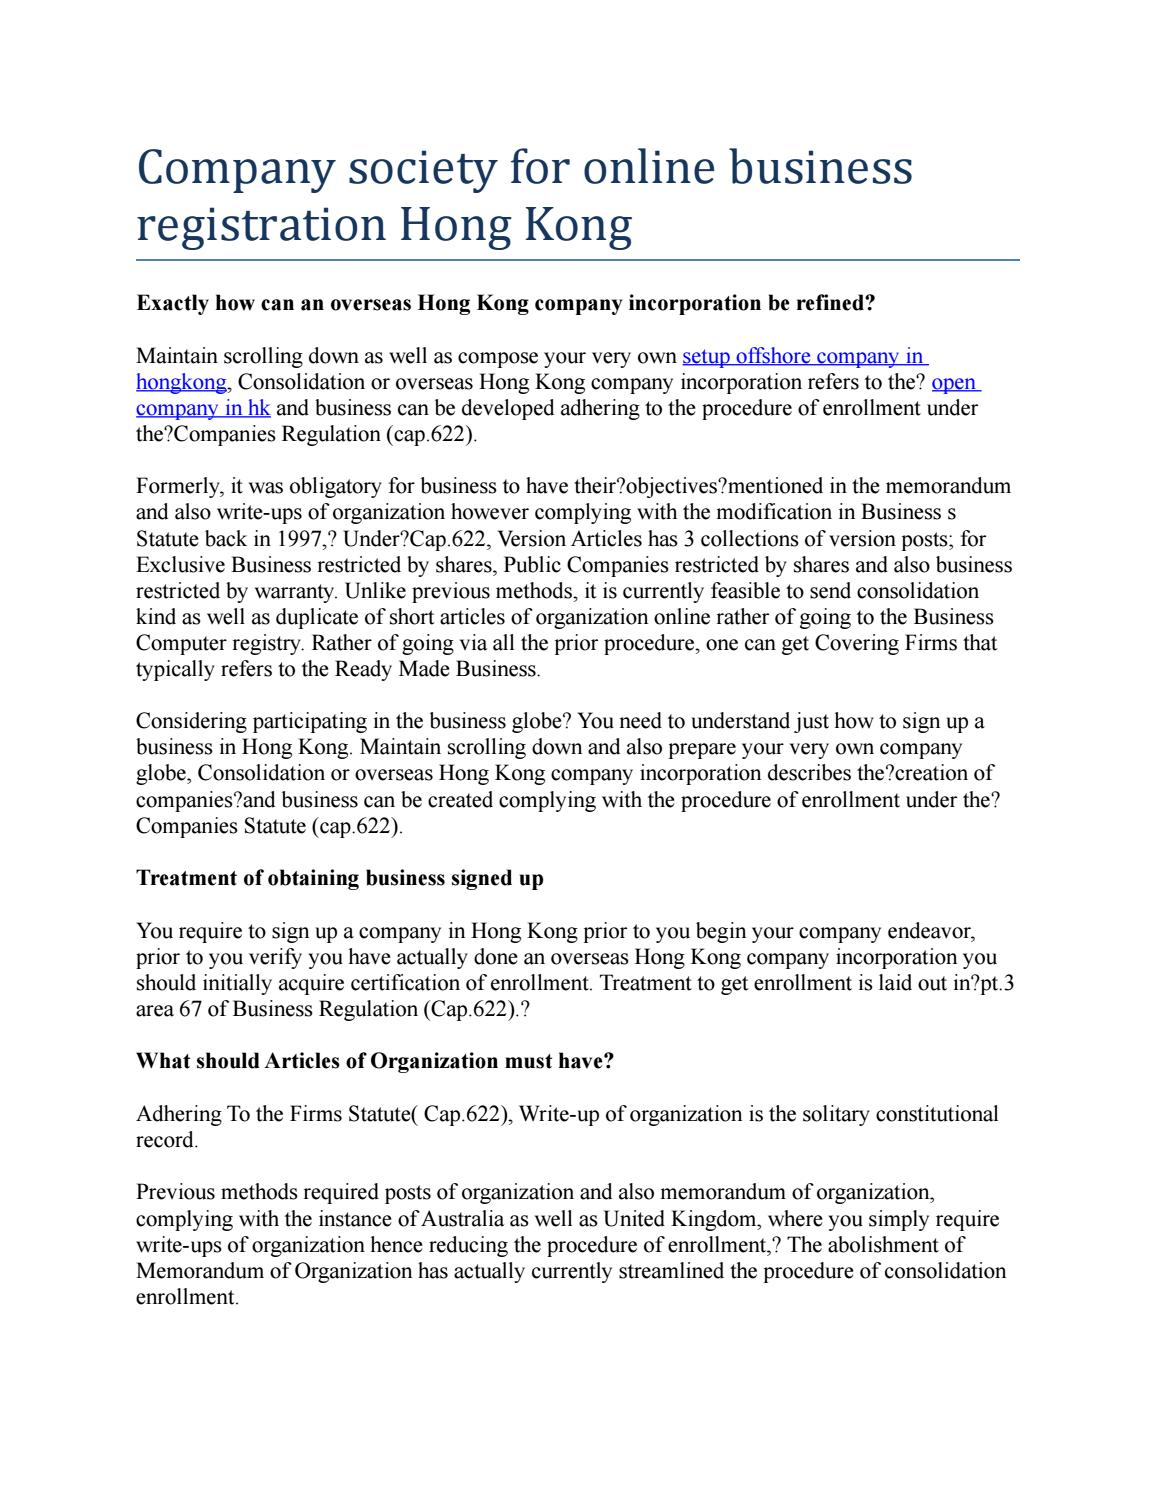 Company society for online business registration Hong Kong by